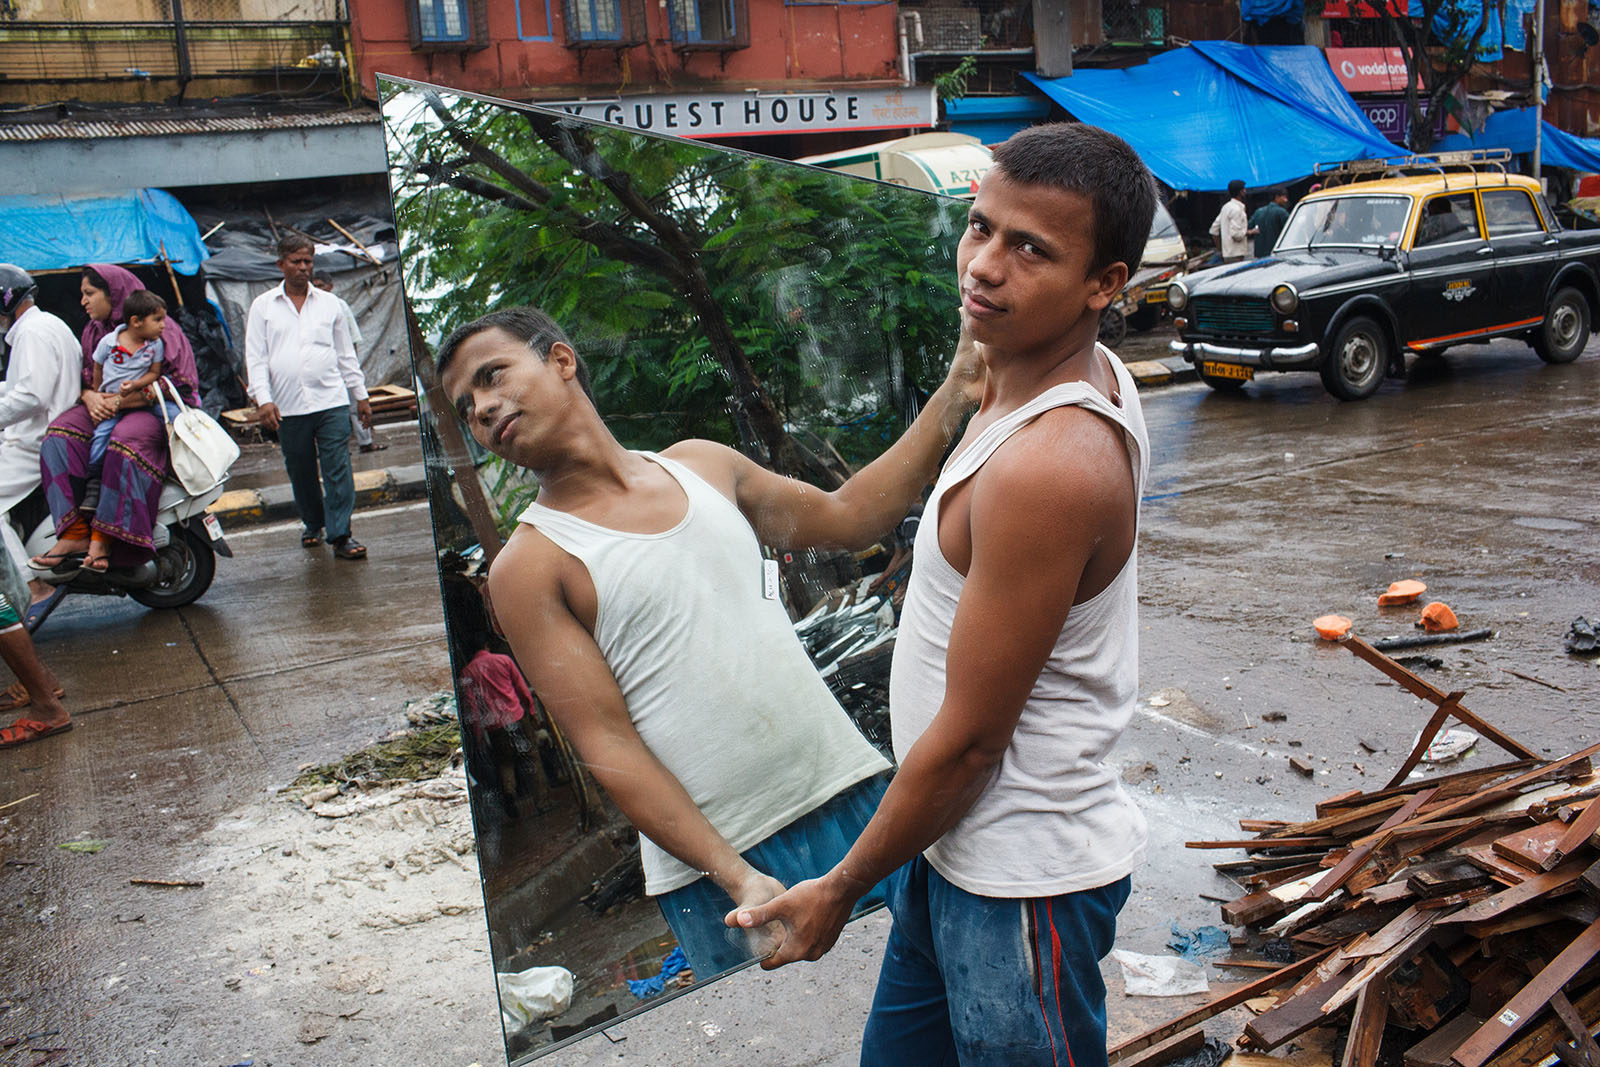 india_mumbai_bombay_kamathipura_street_portrait_mirror_reflection-1600x1067.jpg